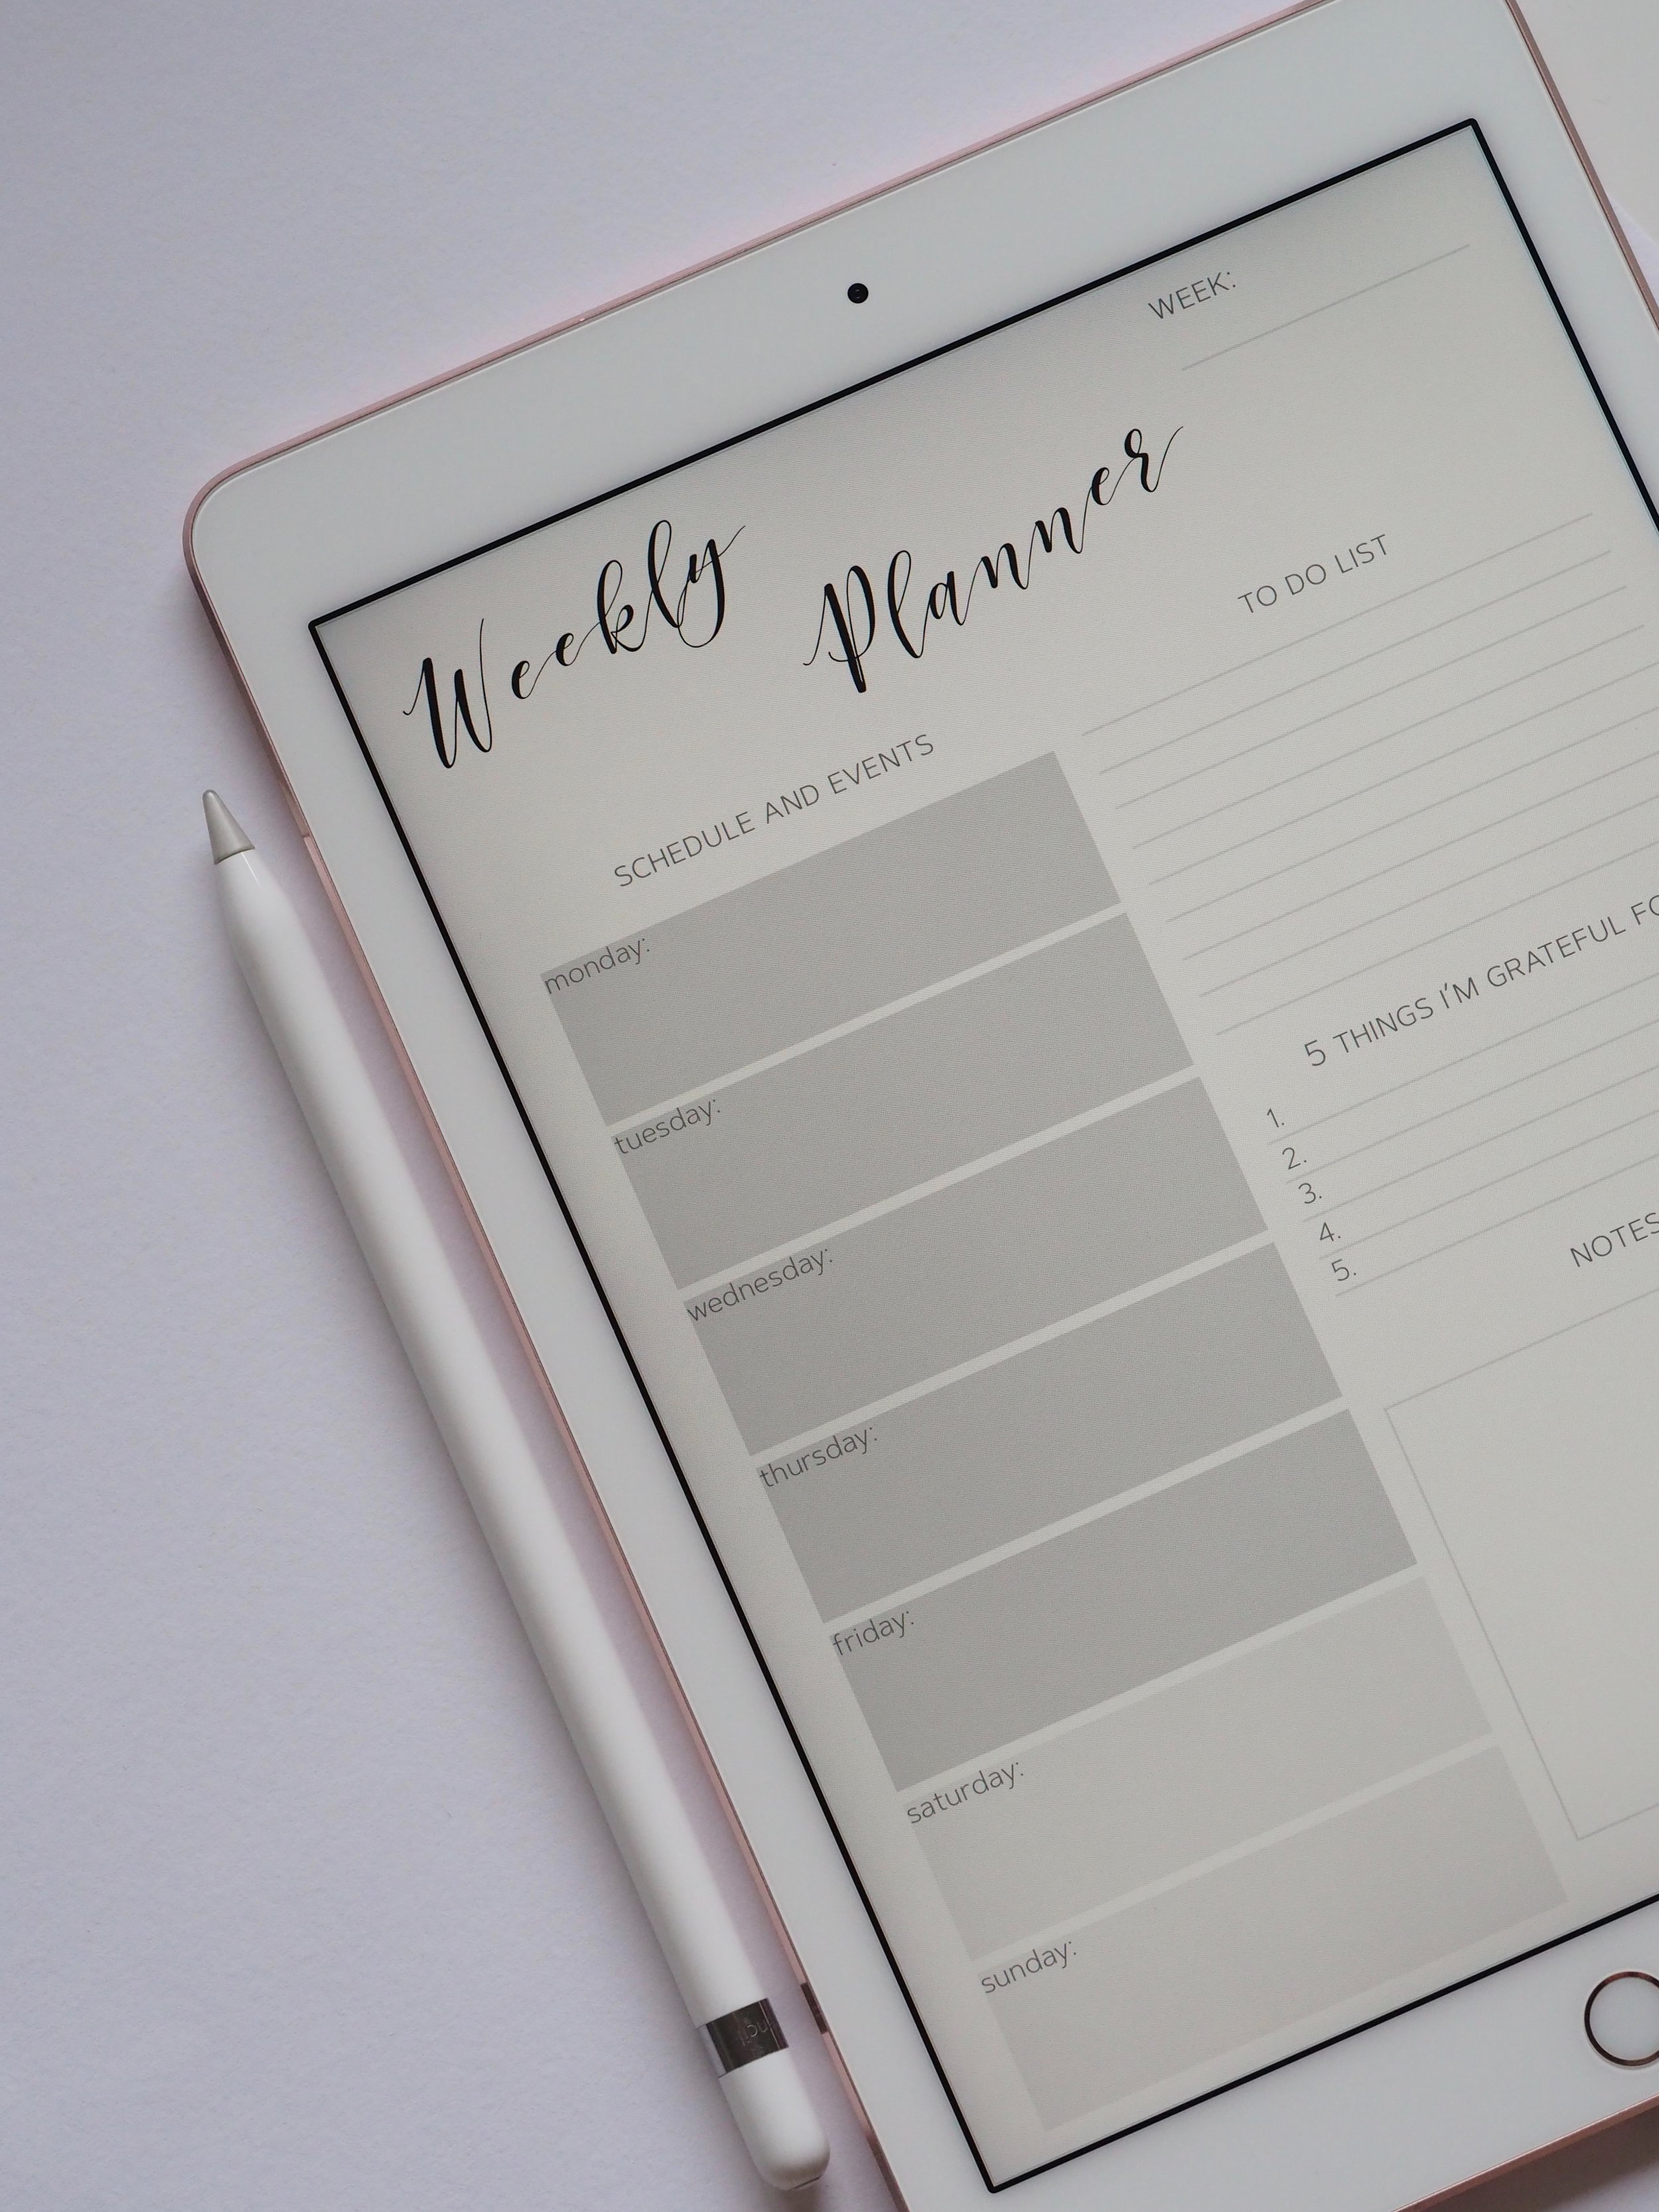 Weekly planner and goals list